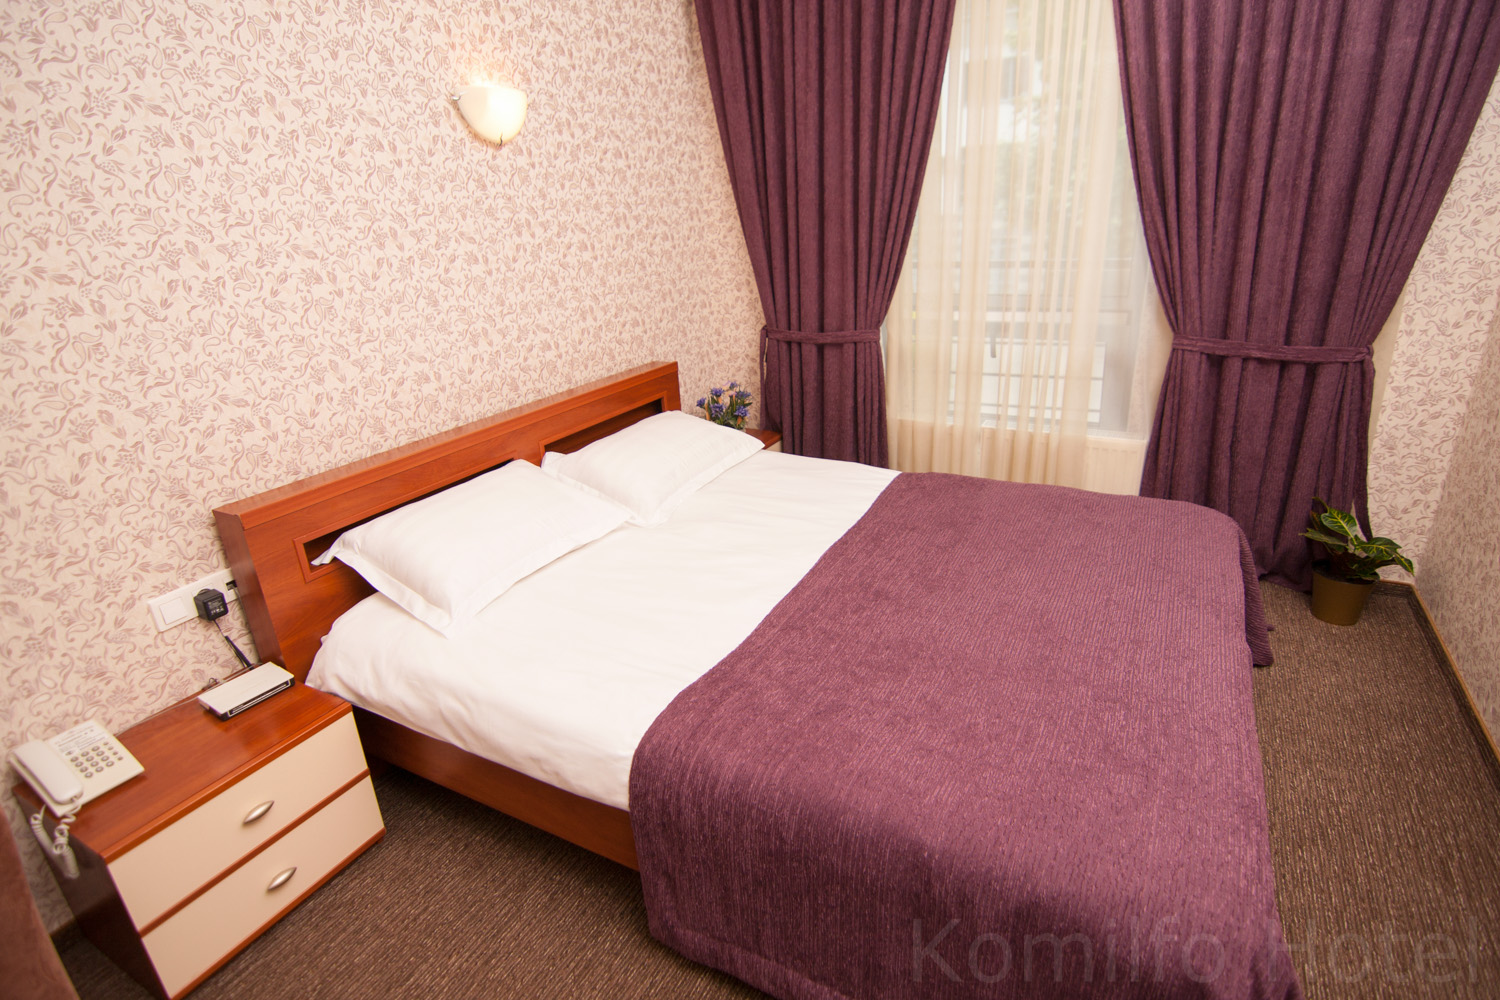 https://voyages-moldavie.com/wp-content/uploads/2019/07/Hôtel-Komilfo.jpg